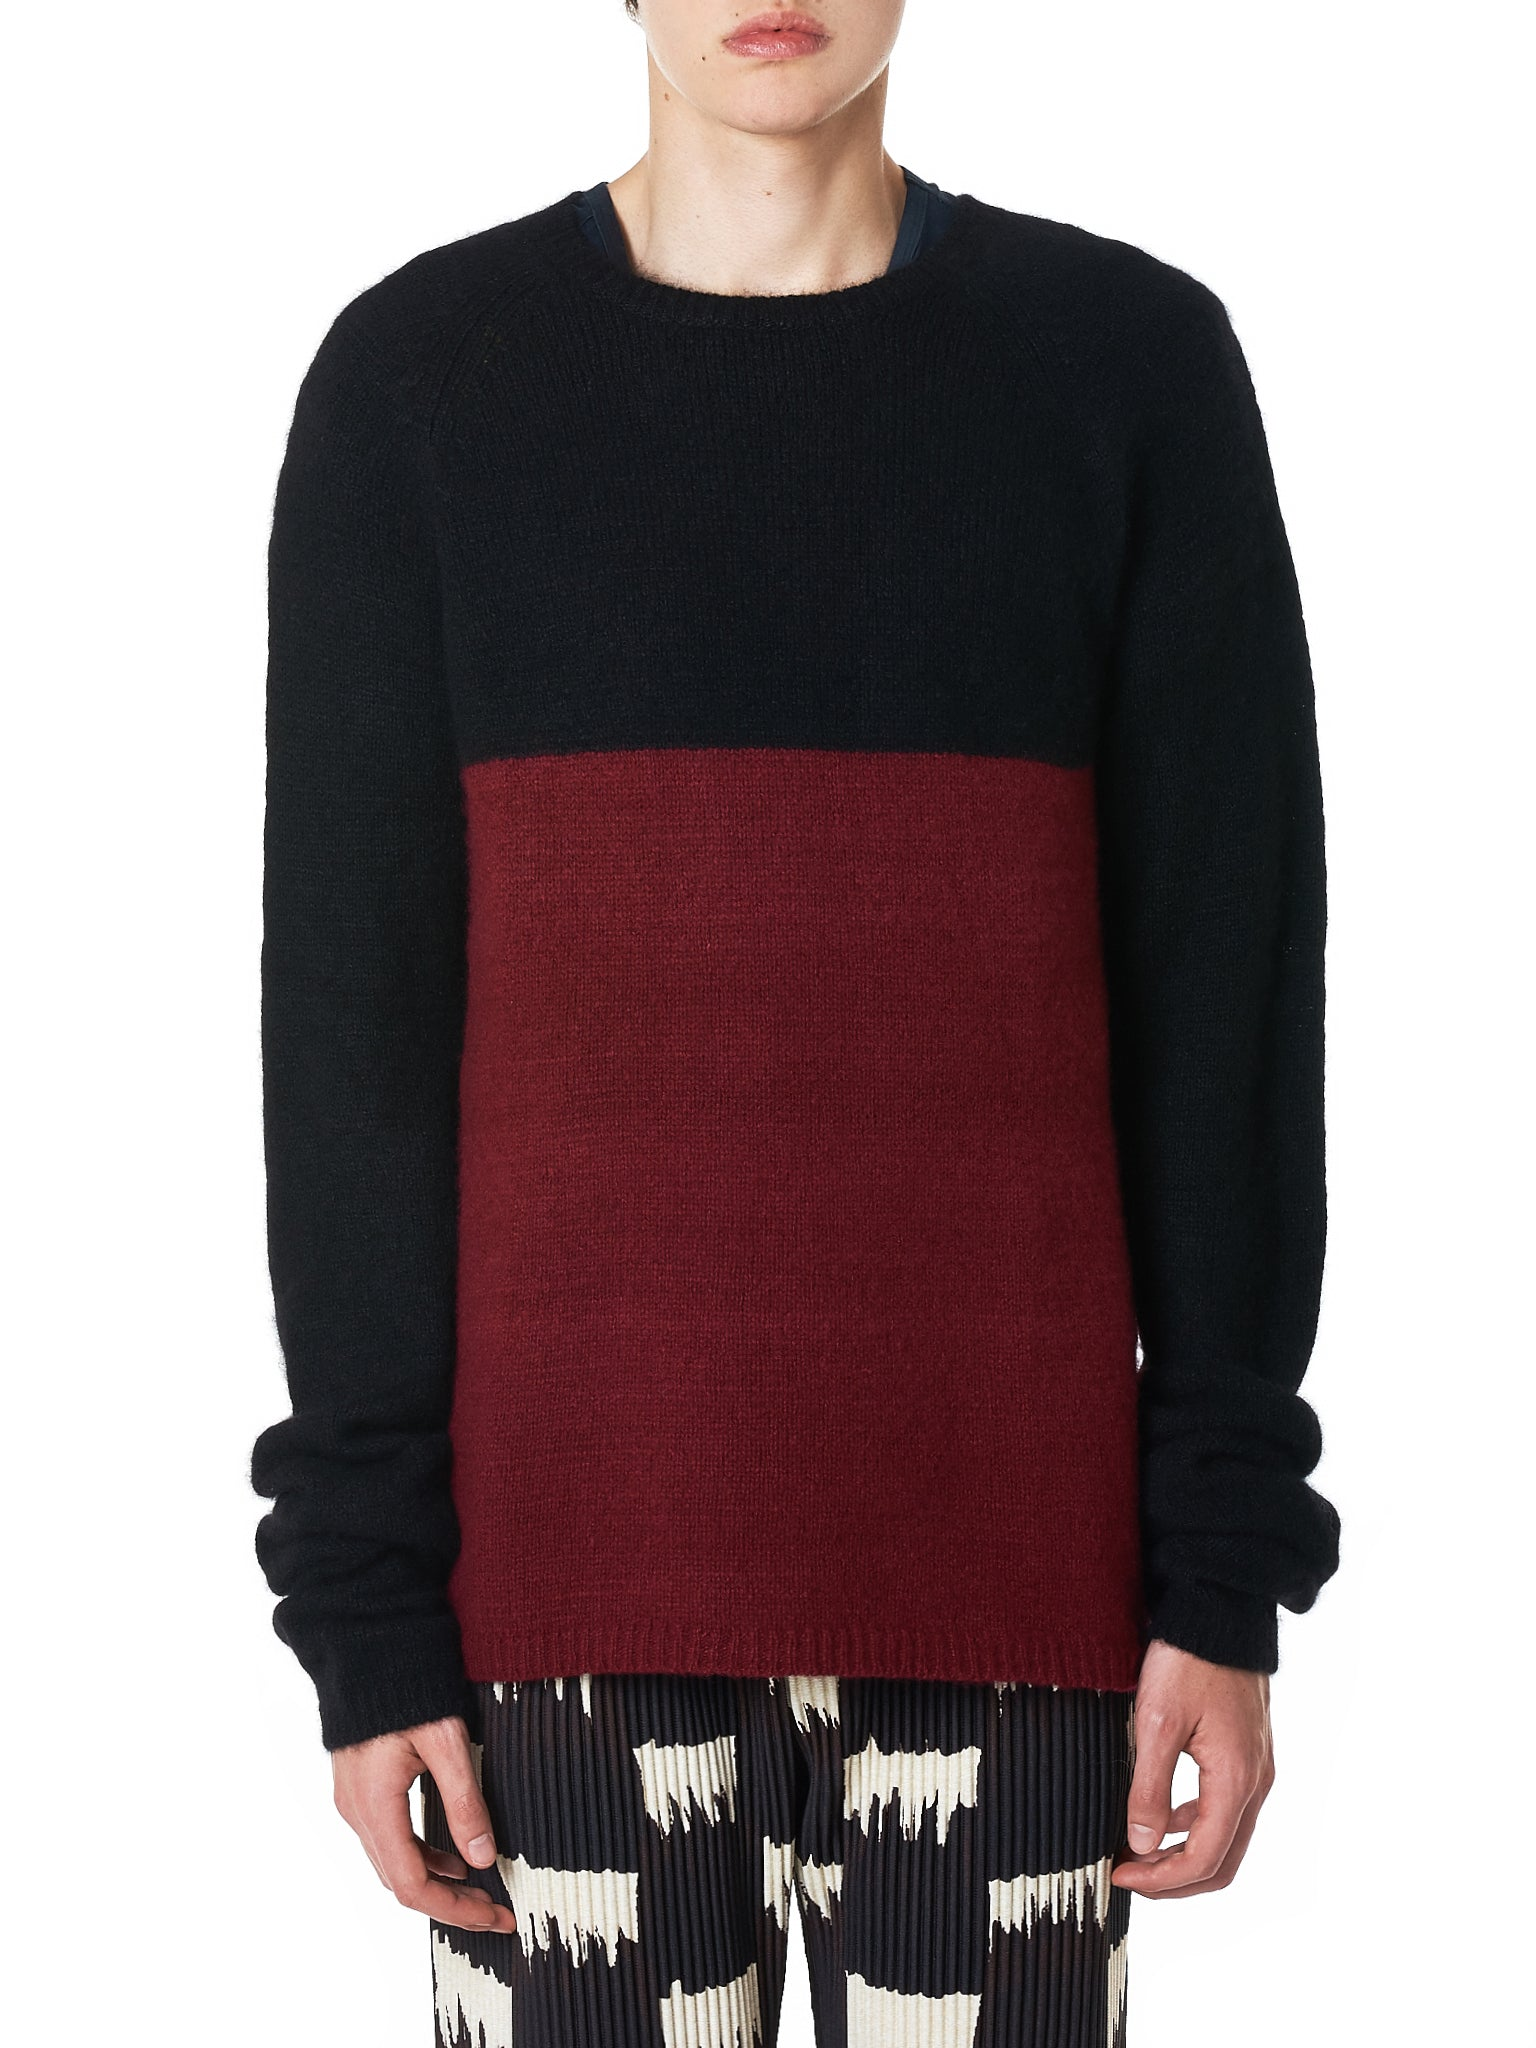 Denis Colomb Sweater - Hlorenzo Front